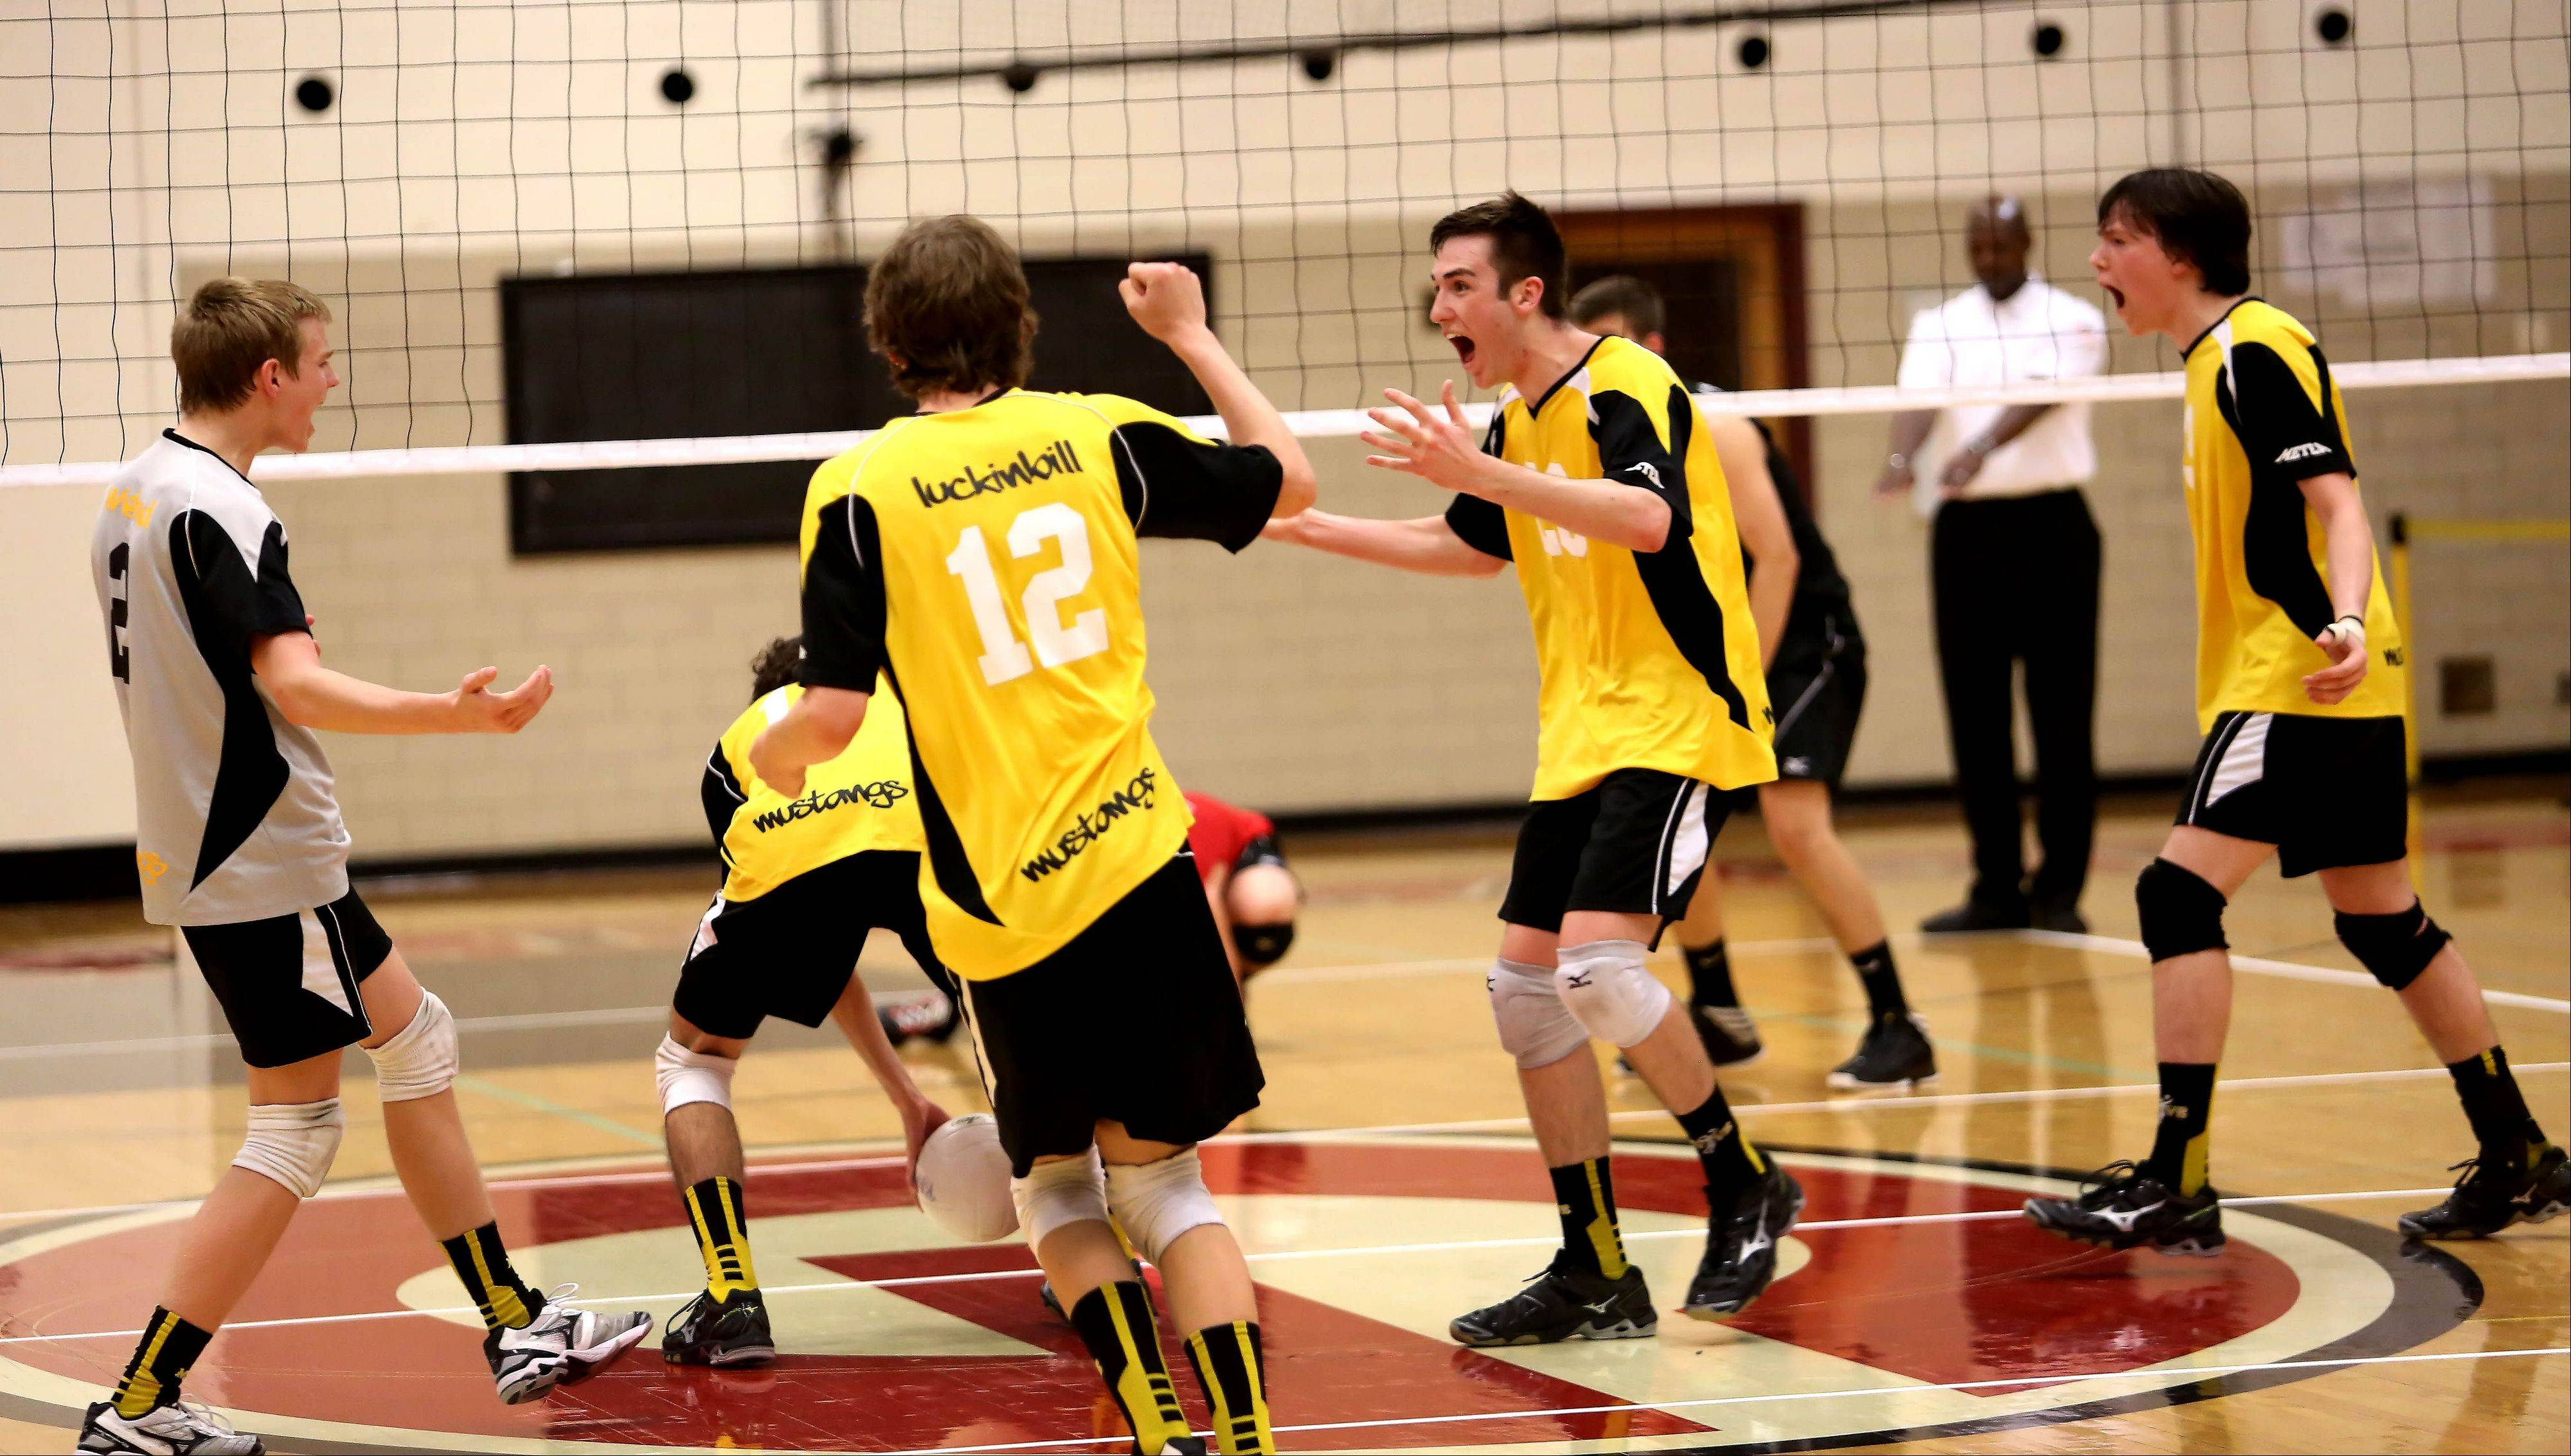 Metea Valley celebrate a point won in their 2-0 win over Glenbard East in boys regional volleyball action in Lombard in Tuesday.